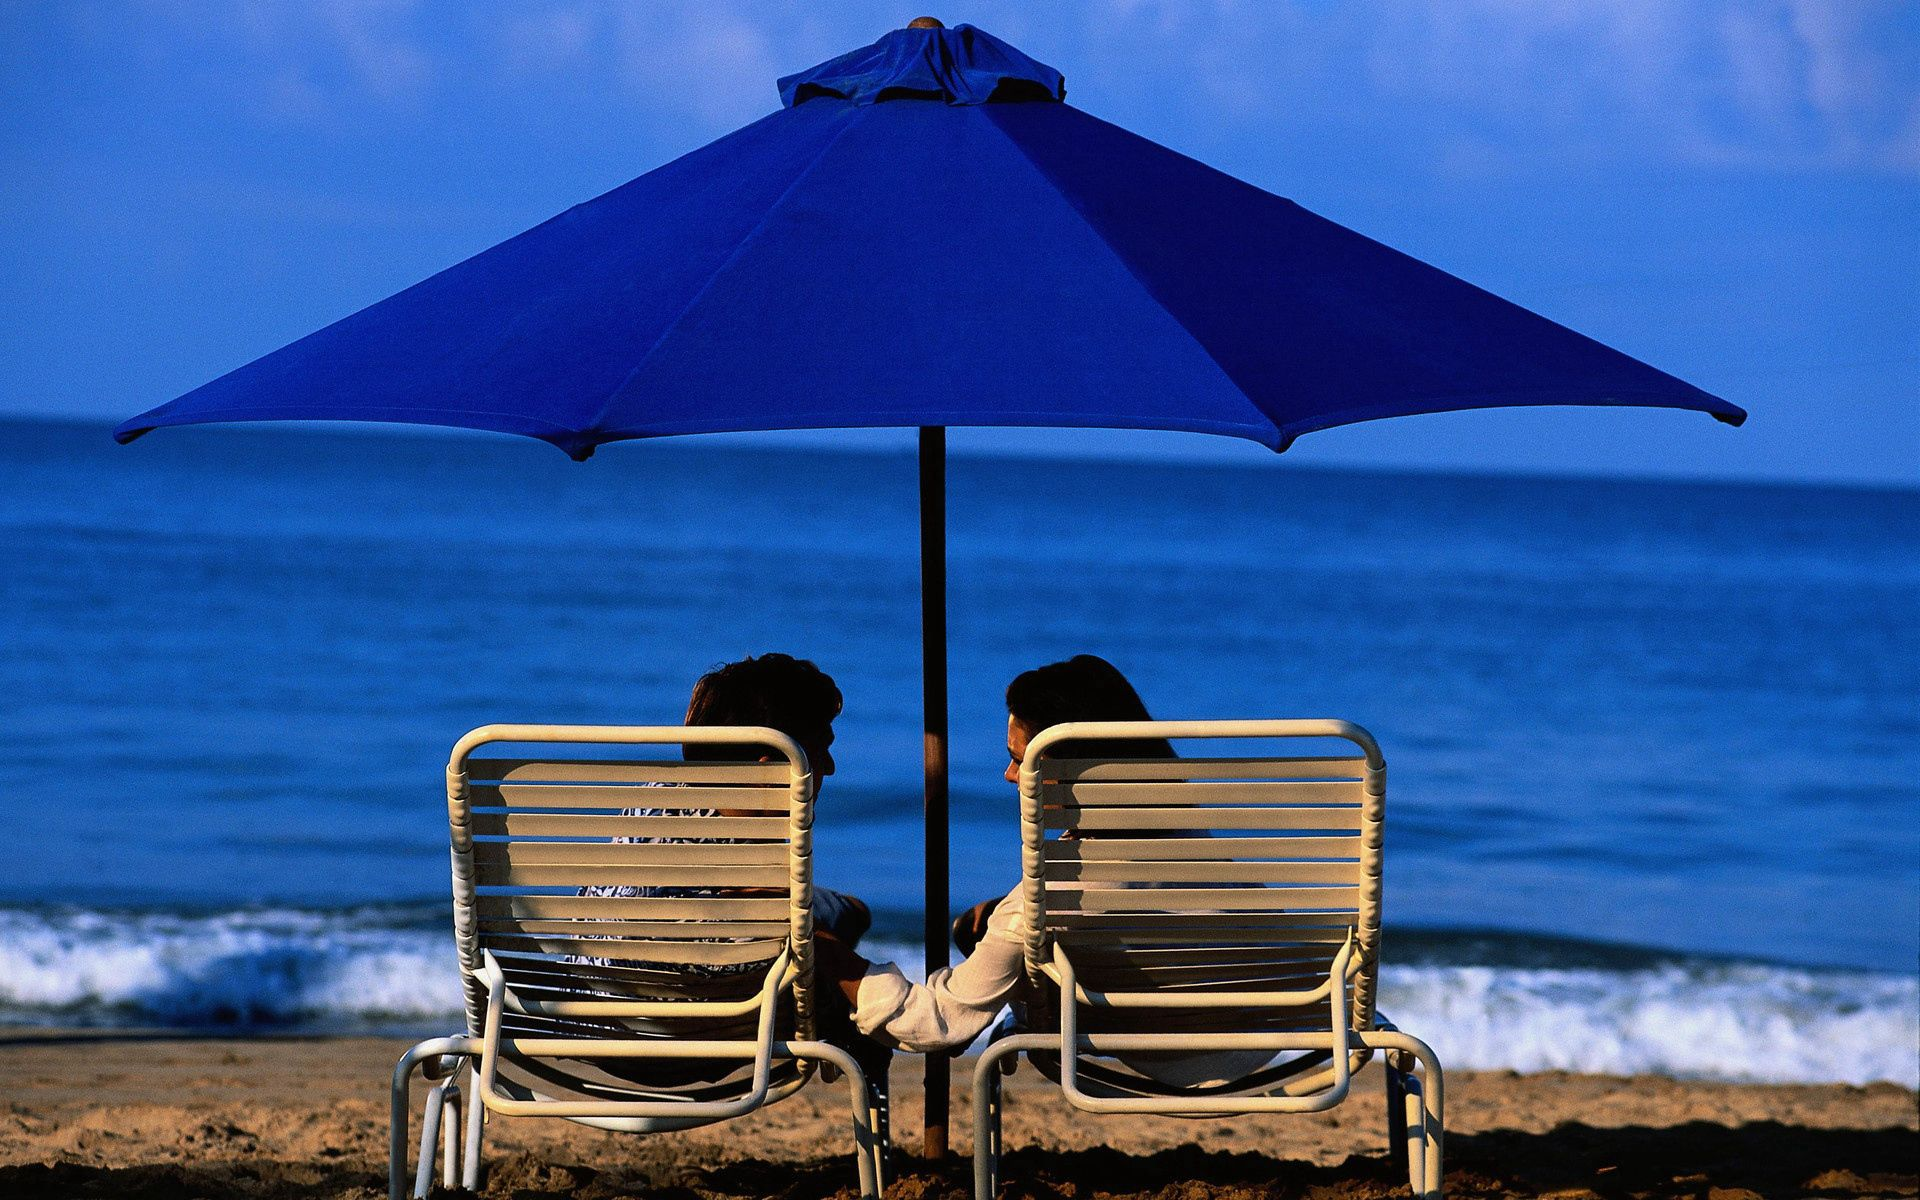 120486 Screensavers and Wallpapers Guy for phone. Download Sea, Beach, Love, Couple, Pair, To Lie Down, Lie, Girl, Umbrella, Guy, Sun Loungers, Sun Beds pictures for free